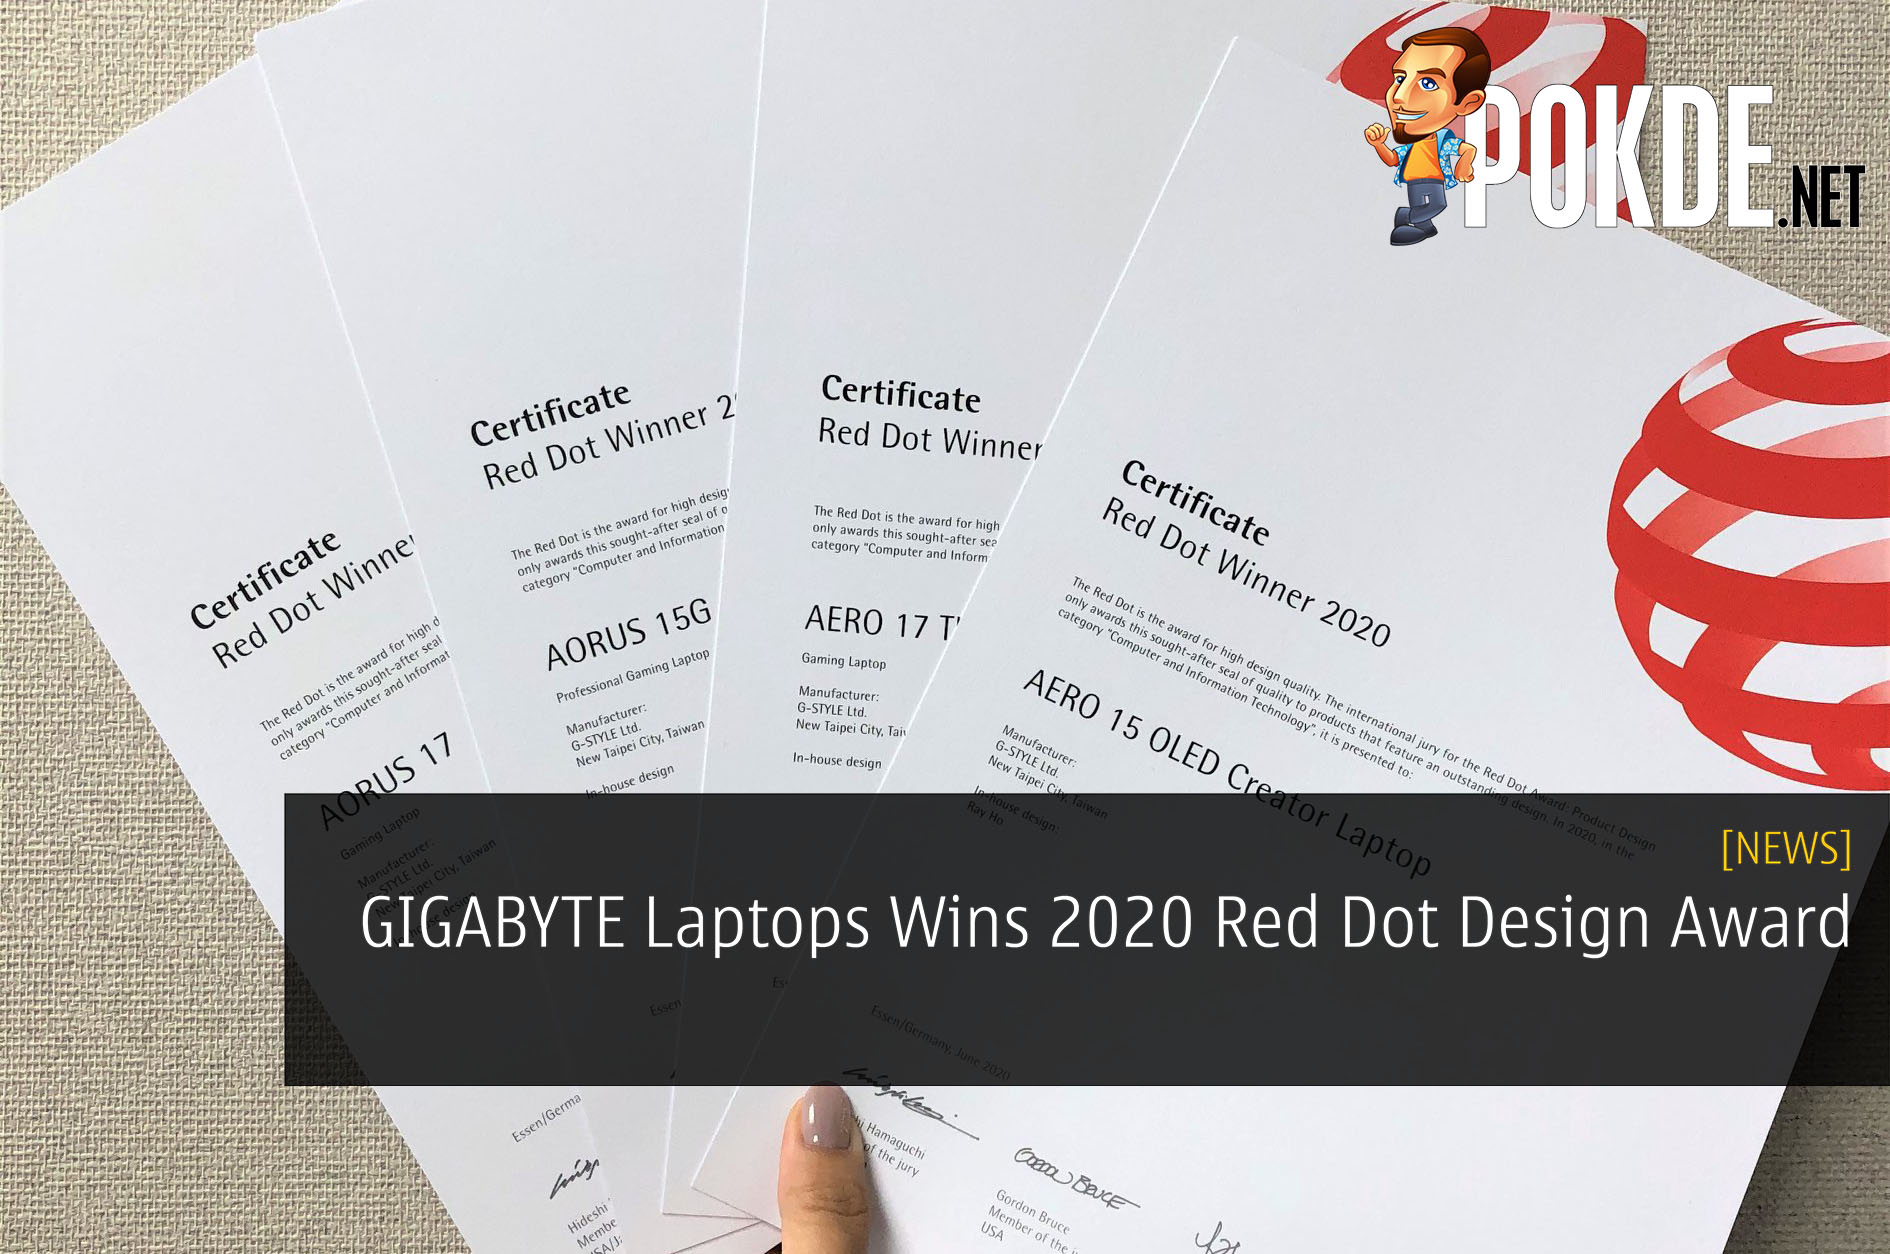 GIGABYTE Laptops Wins 2020 Red Dot Design Award 3